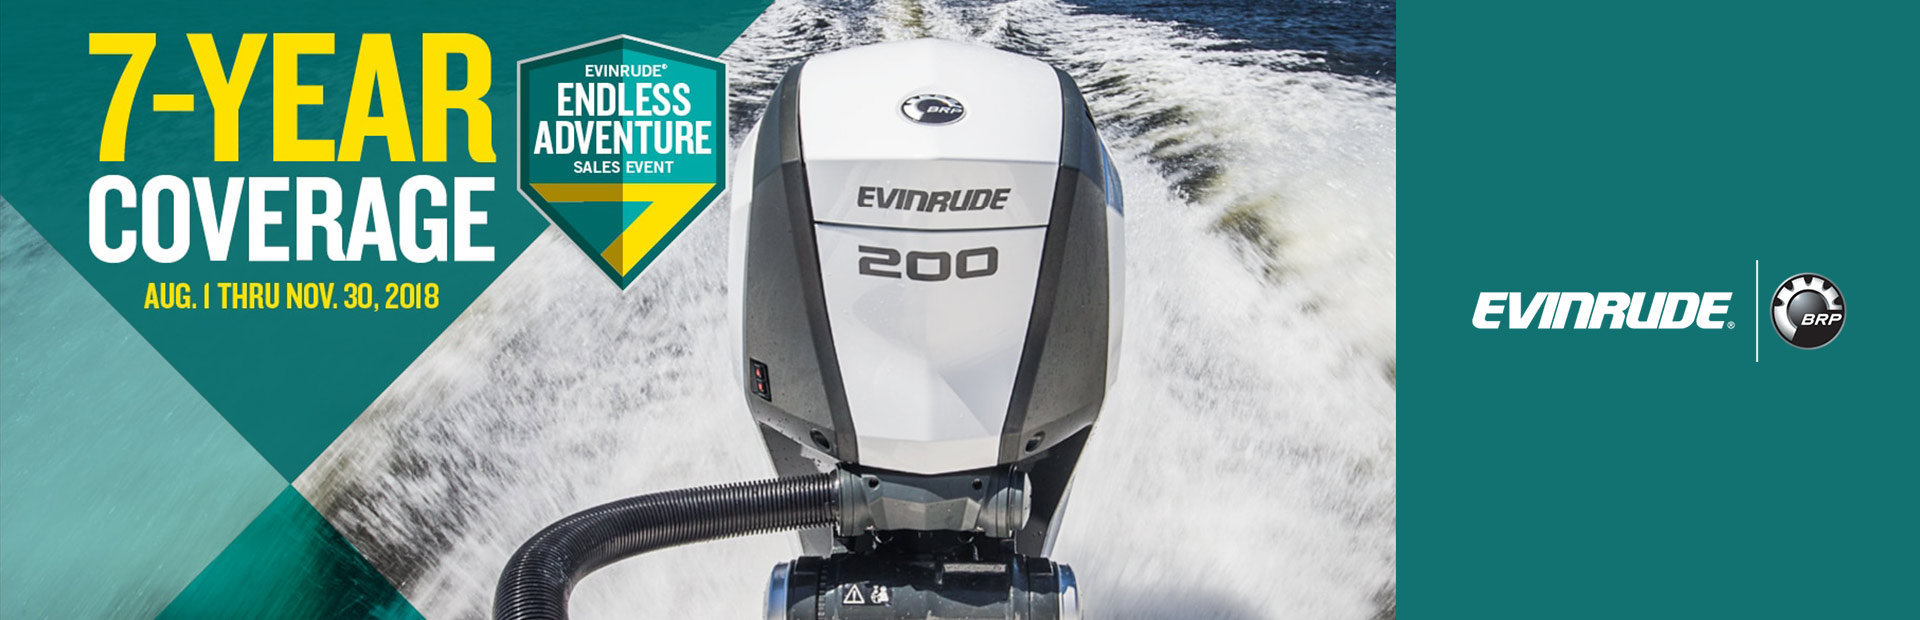 Evinrude: Evinrude® Endless Adventure Sales Event